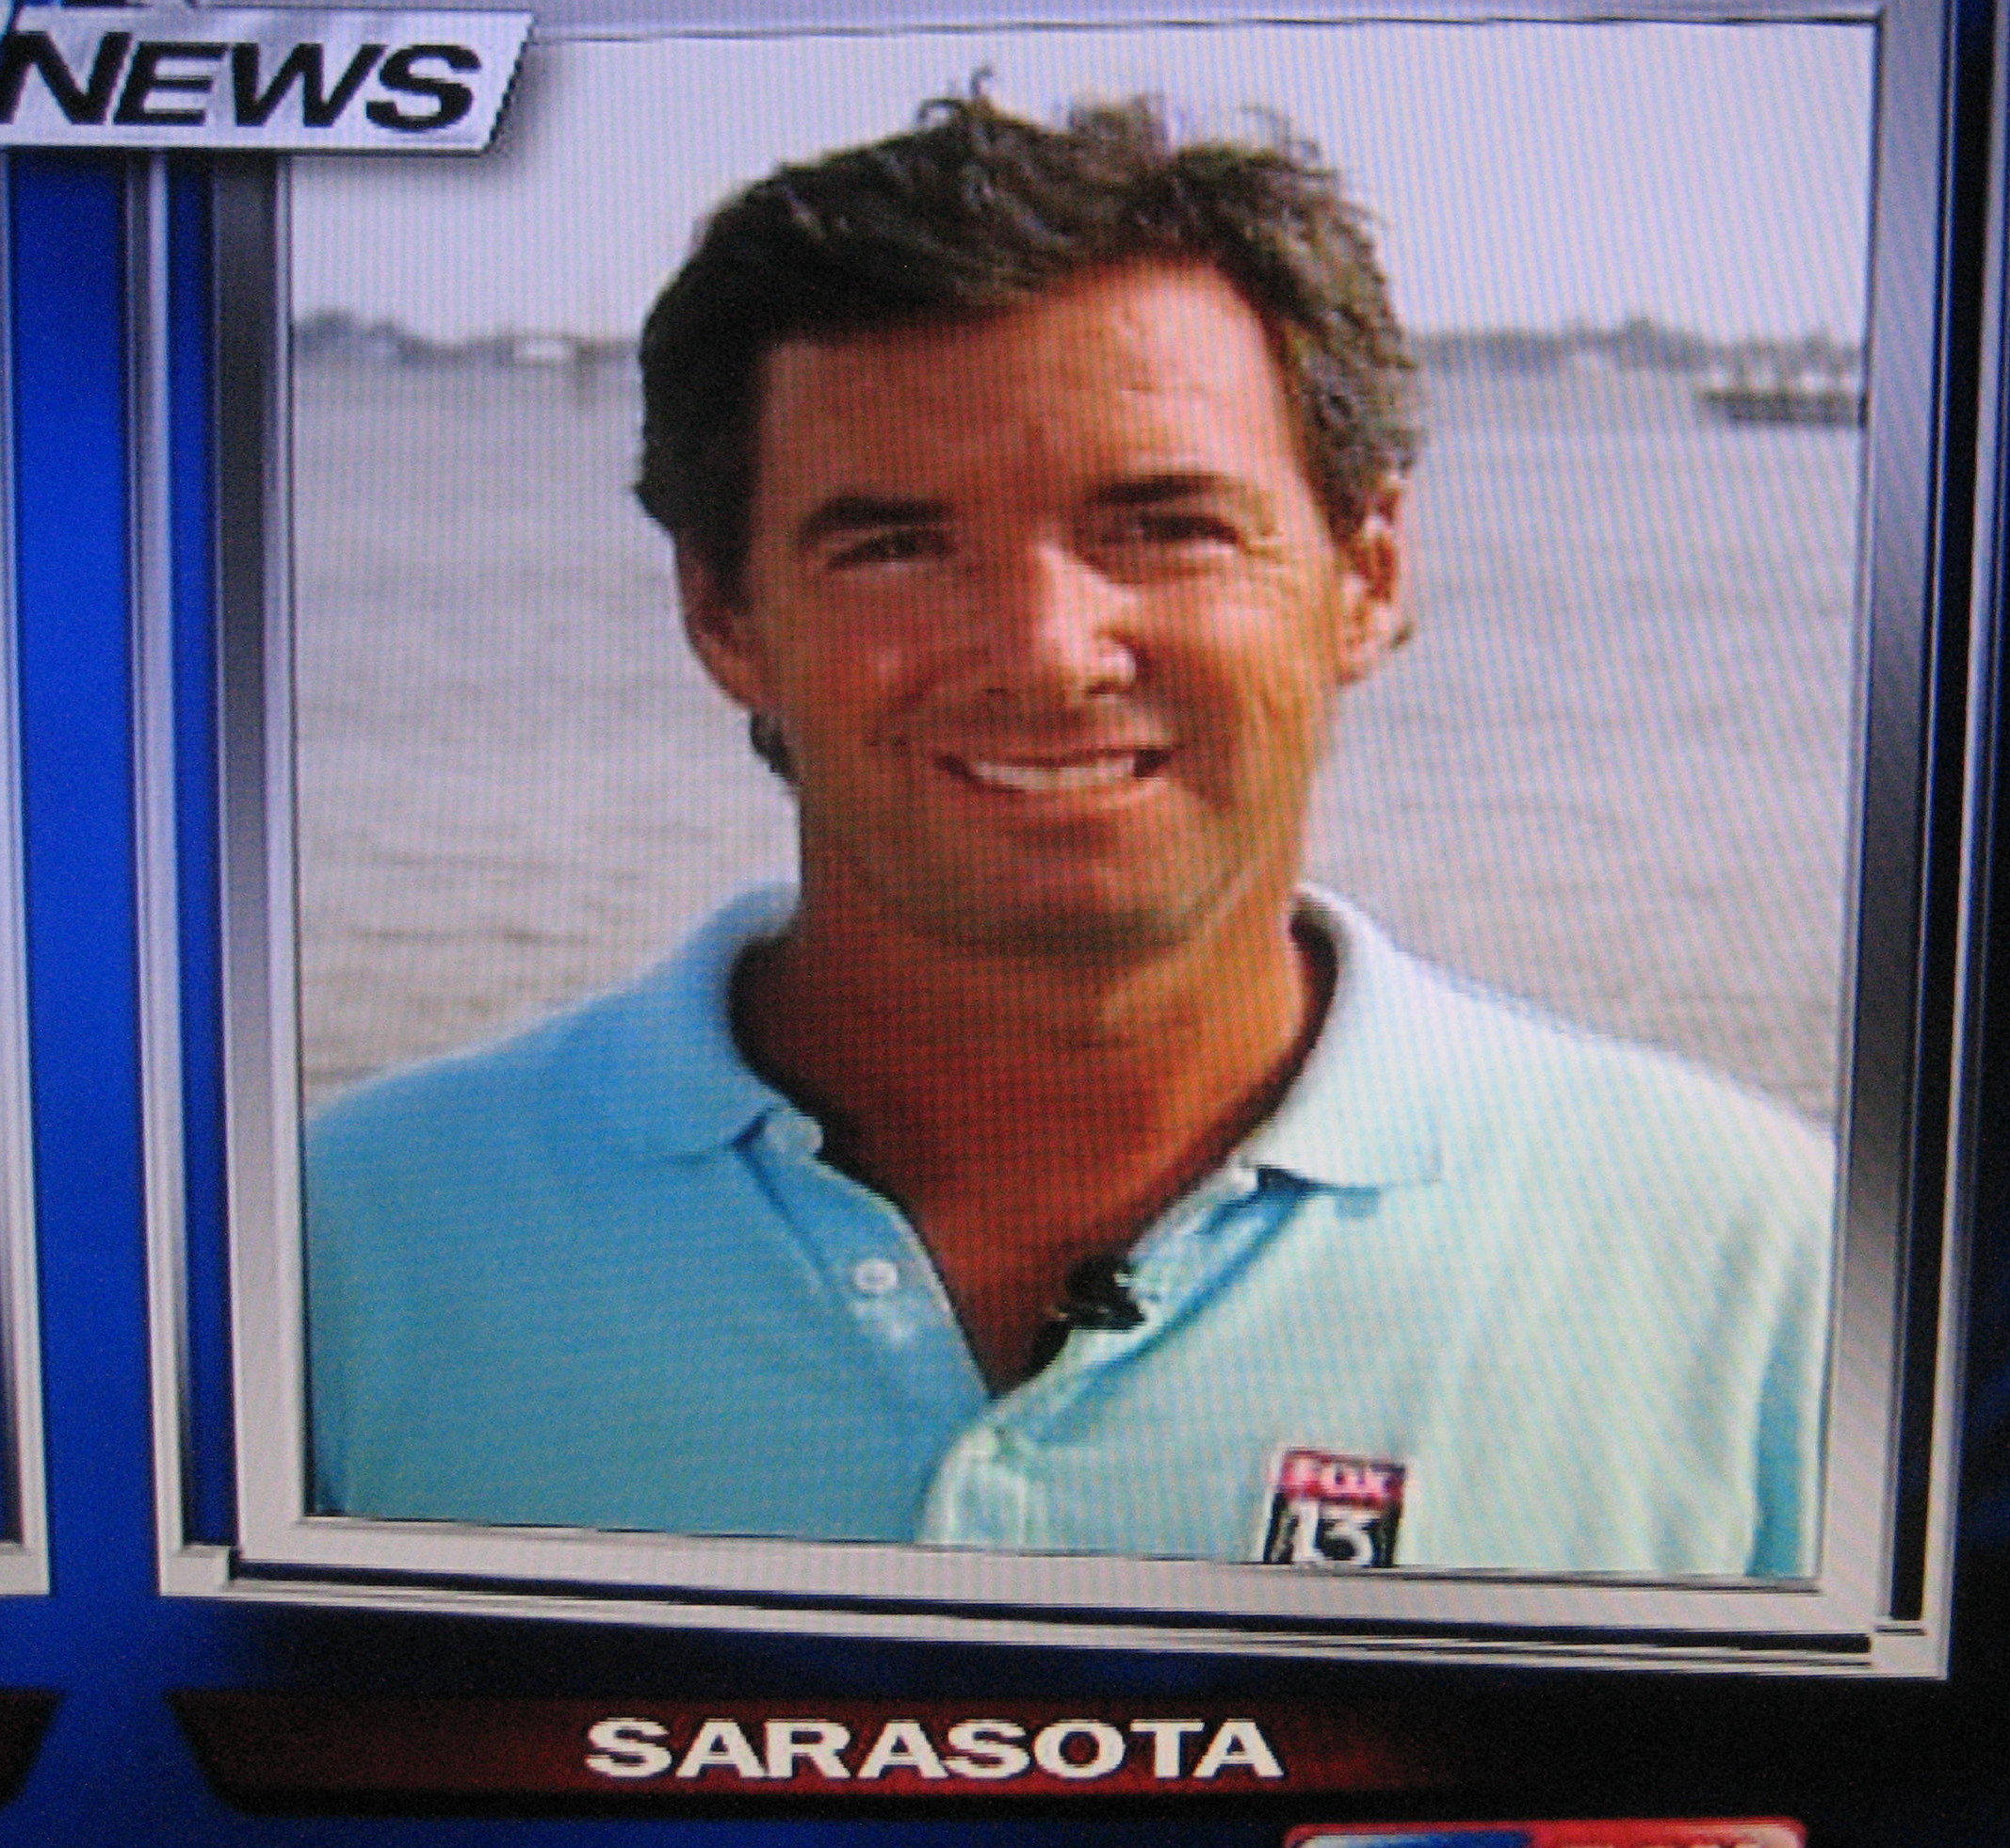 Ray Collins reporting live from Sarasota Bay on Fox 13 News.